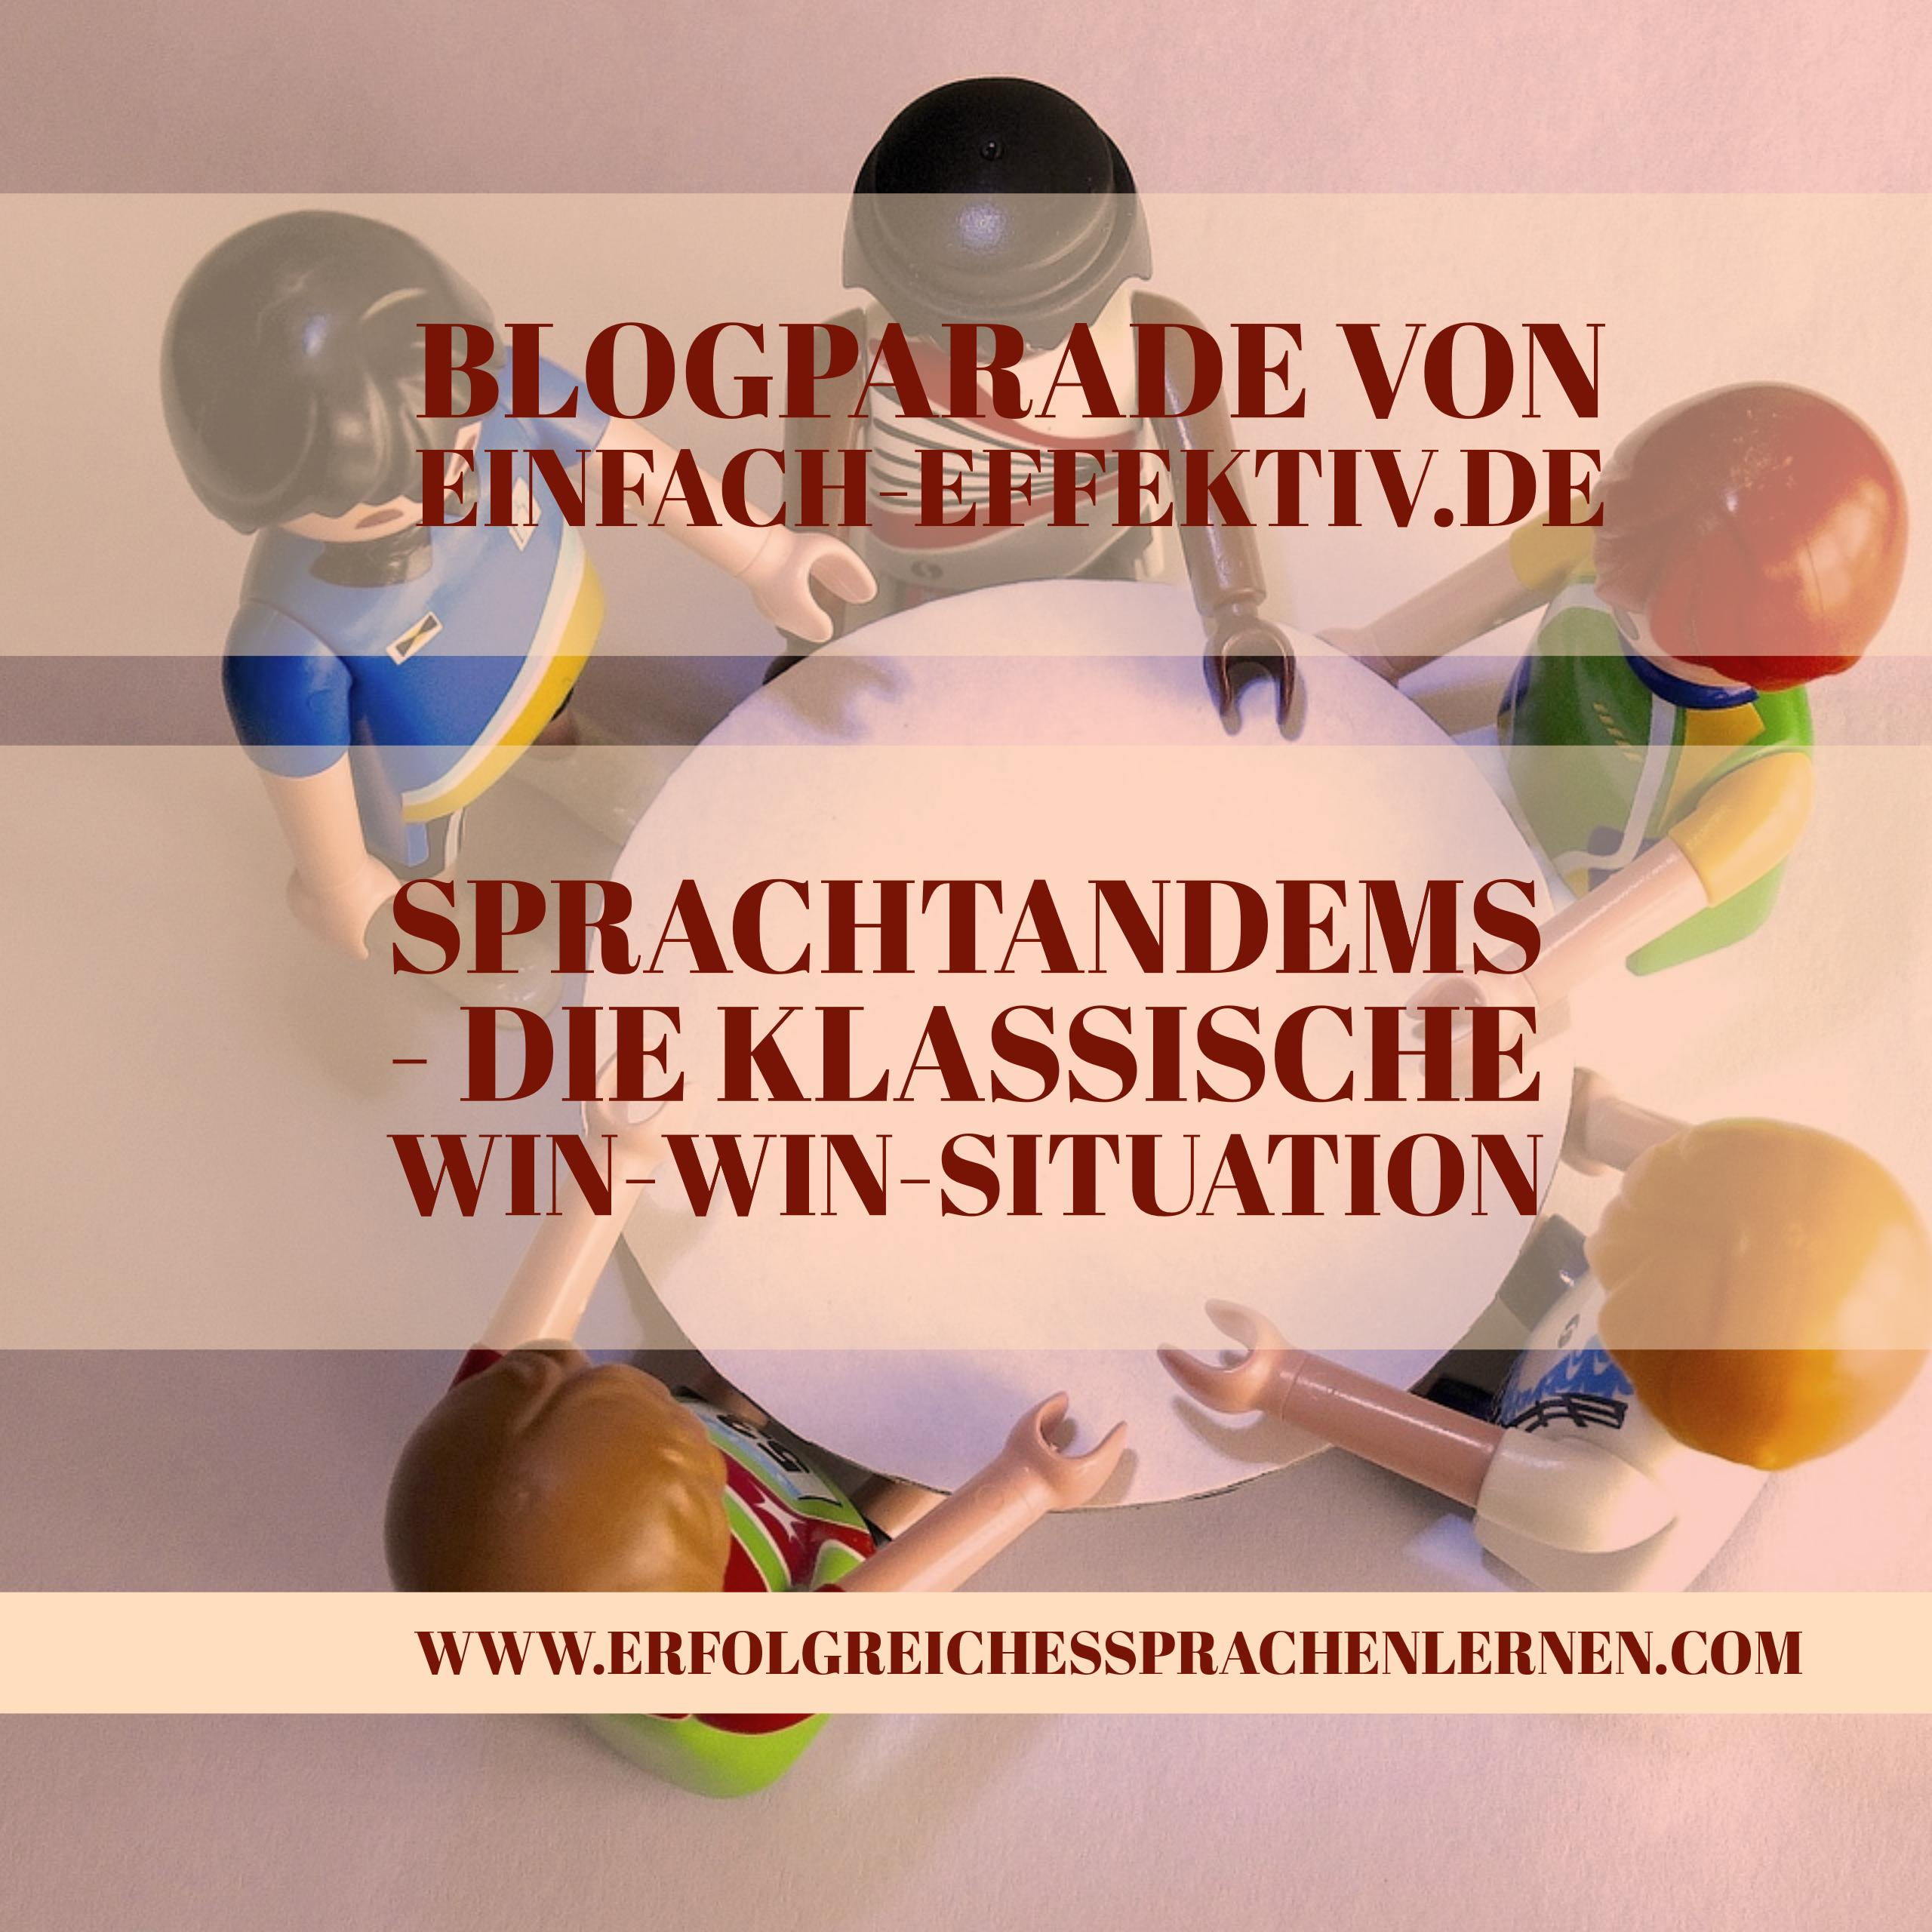 sprachtandem-win-win-situation